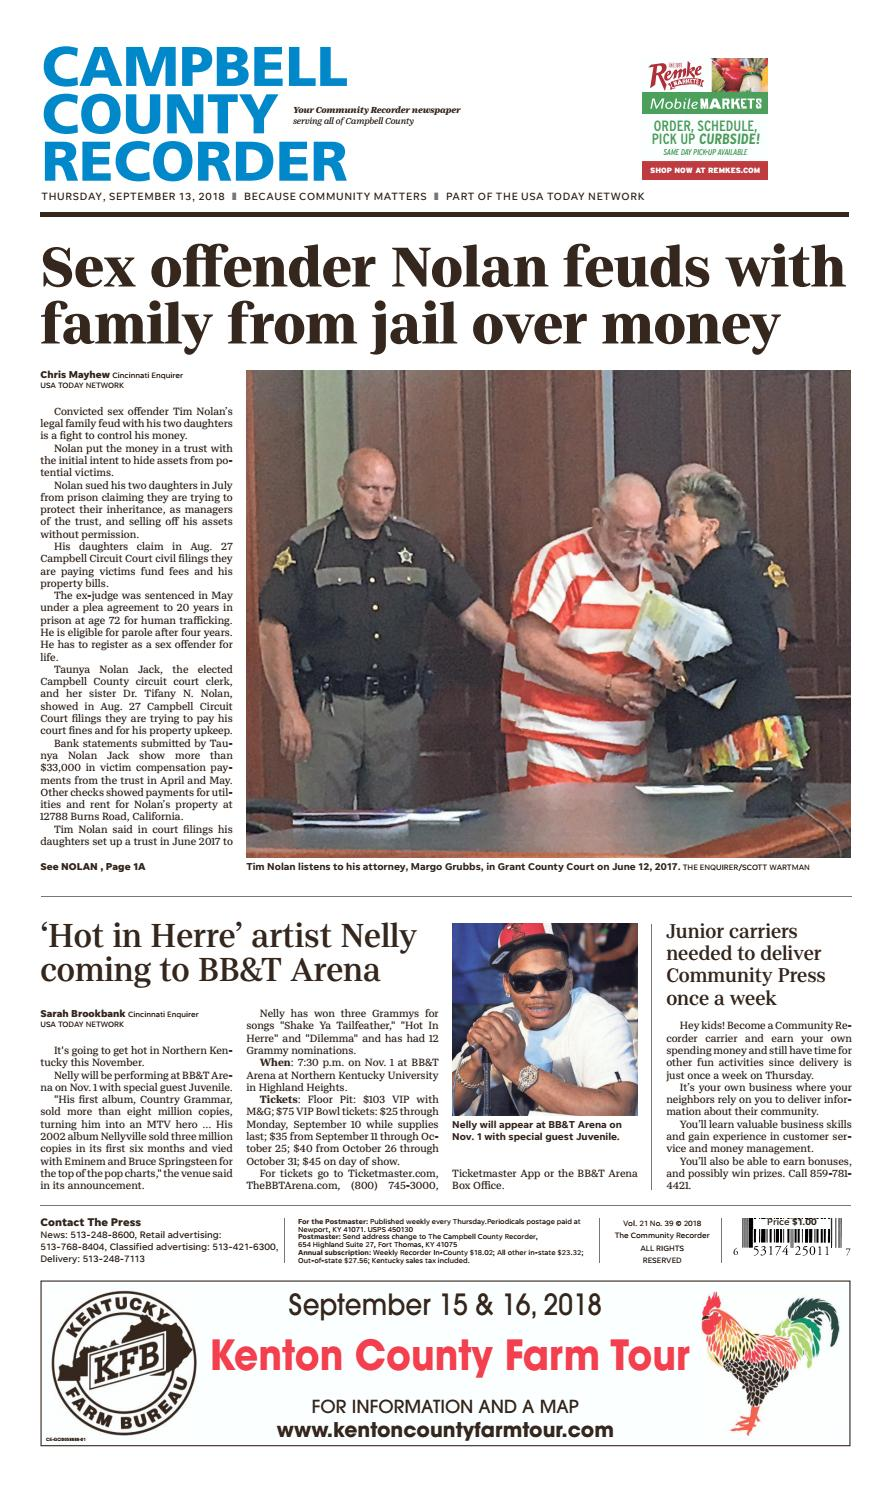 Campbell County Recorder 09/13/18 by Enquirer Media - issuu